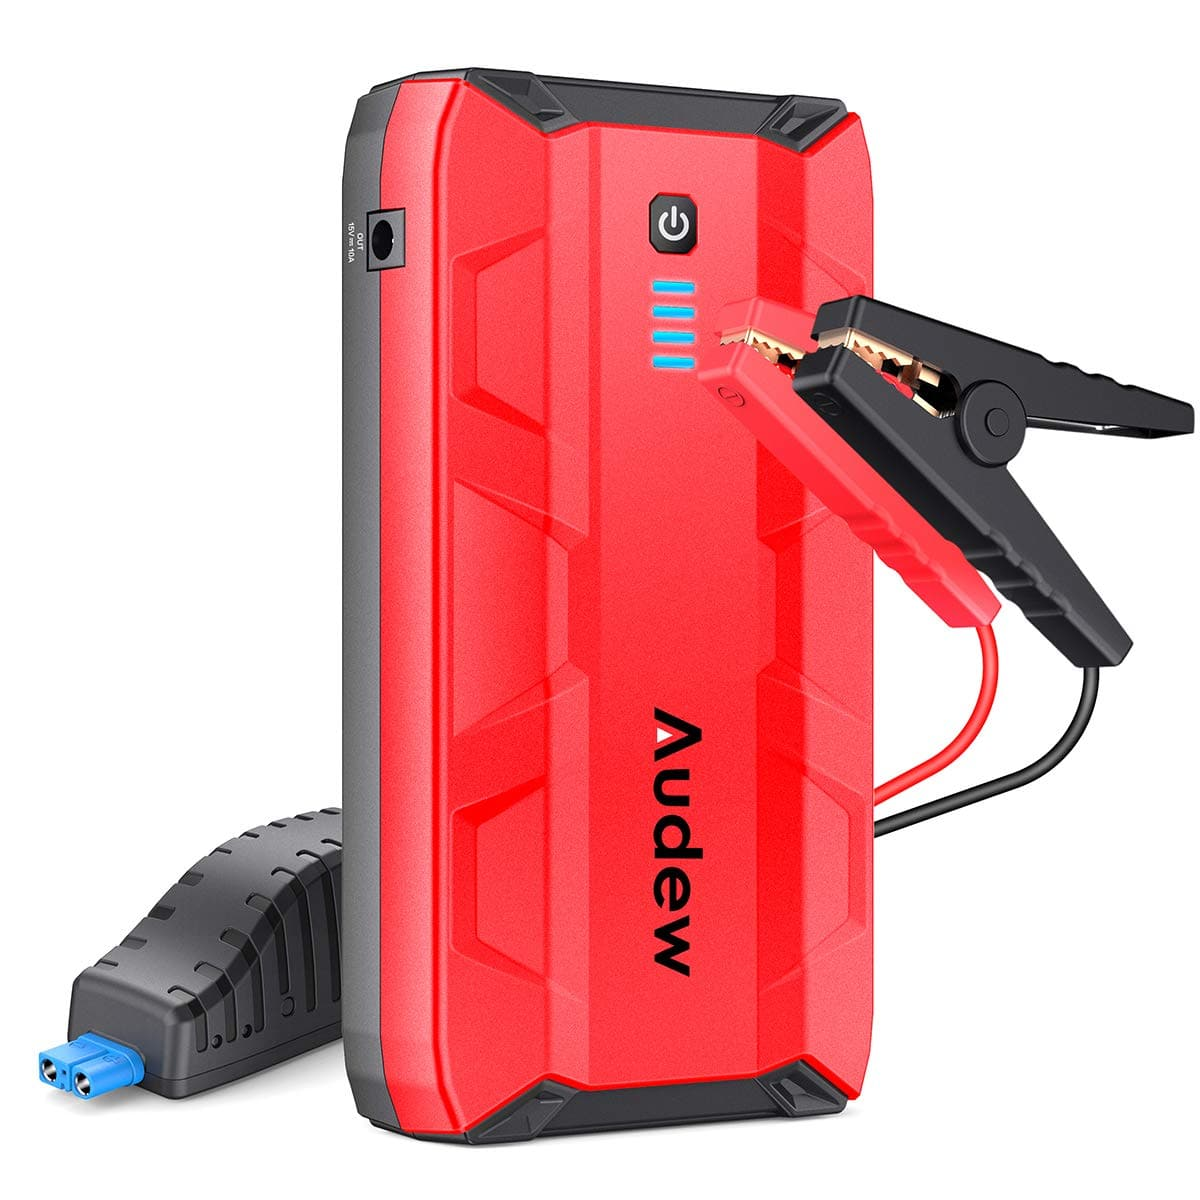 Audew 1000A Peak Portable Car Jump Starter $52.79 after 12% coupon discount - additional 10% off discount code may still be valid fo some